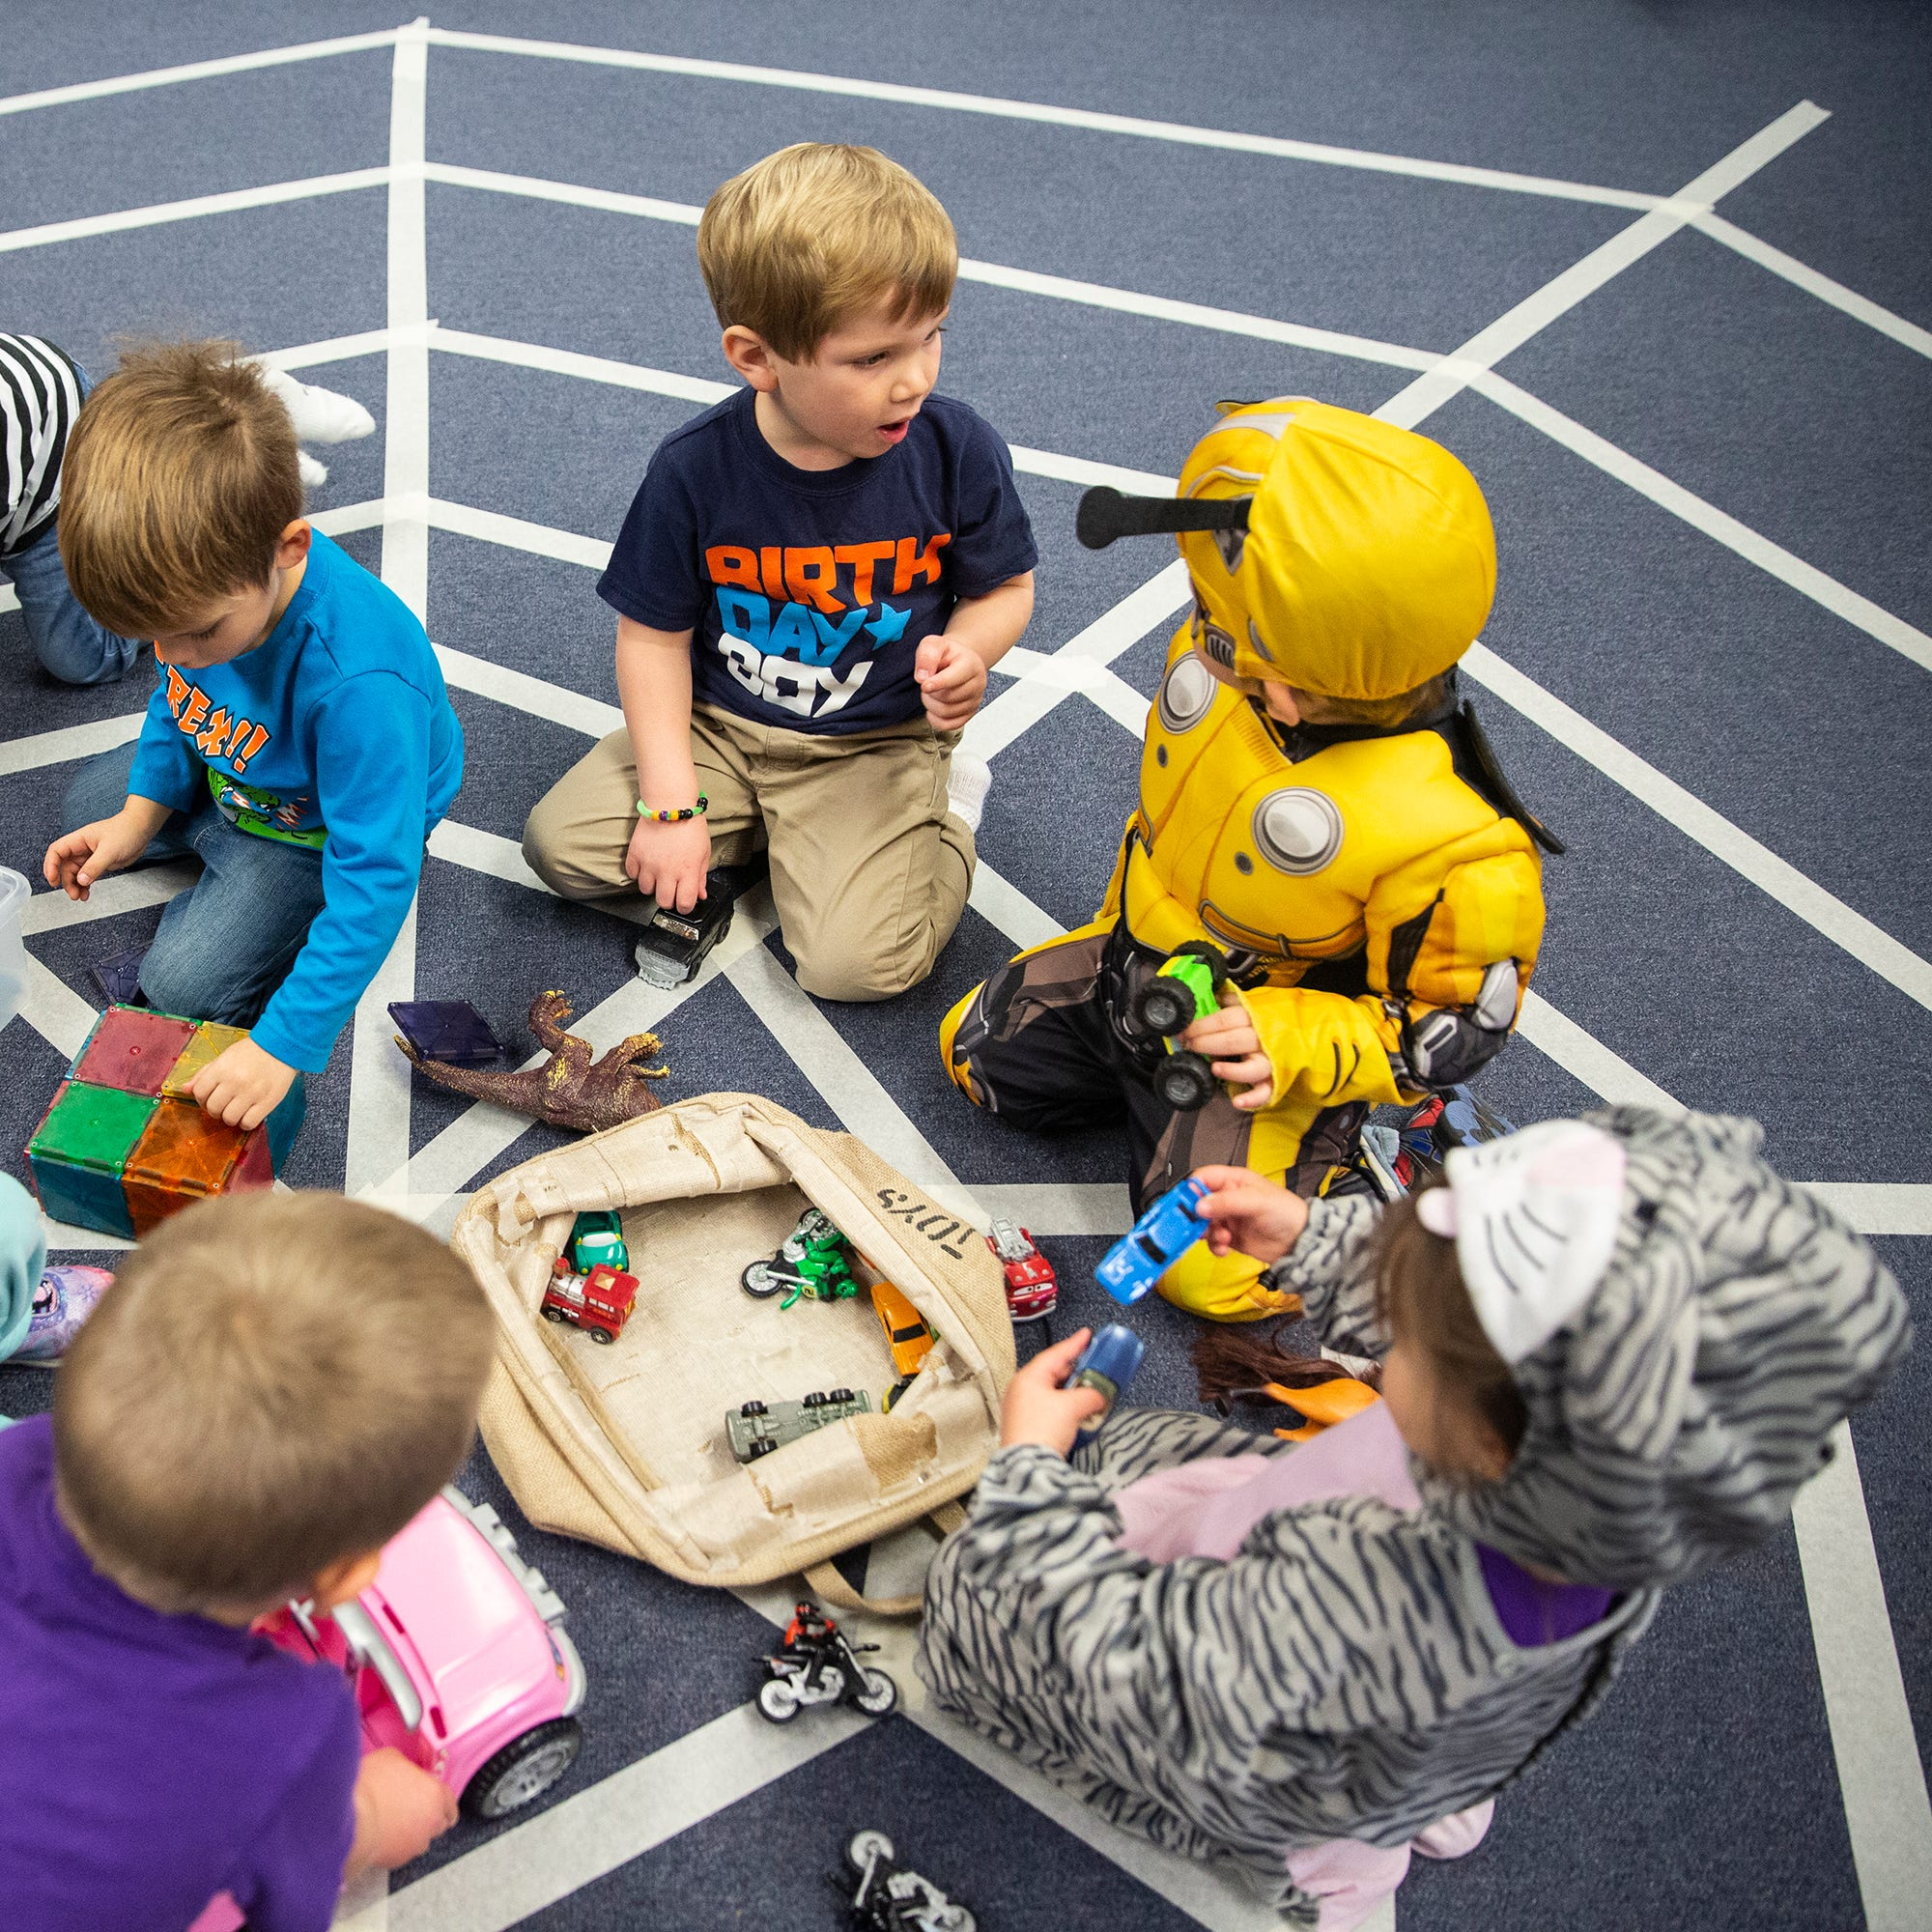 Mind-boggling: The true cost of child care in Iowa is more than housing for a family of 4